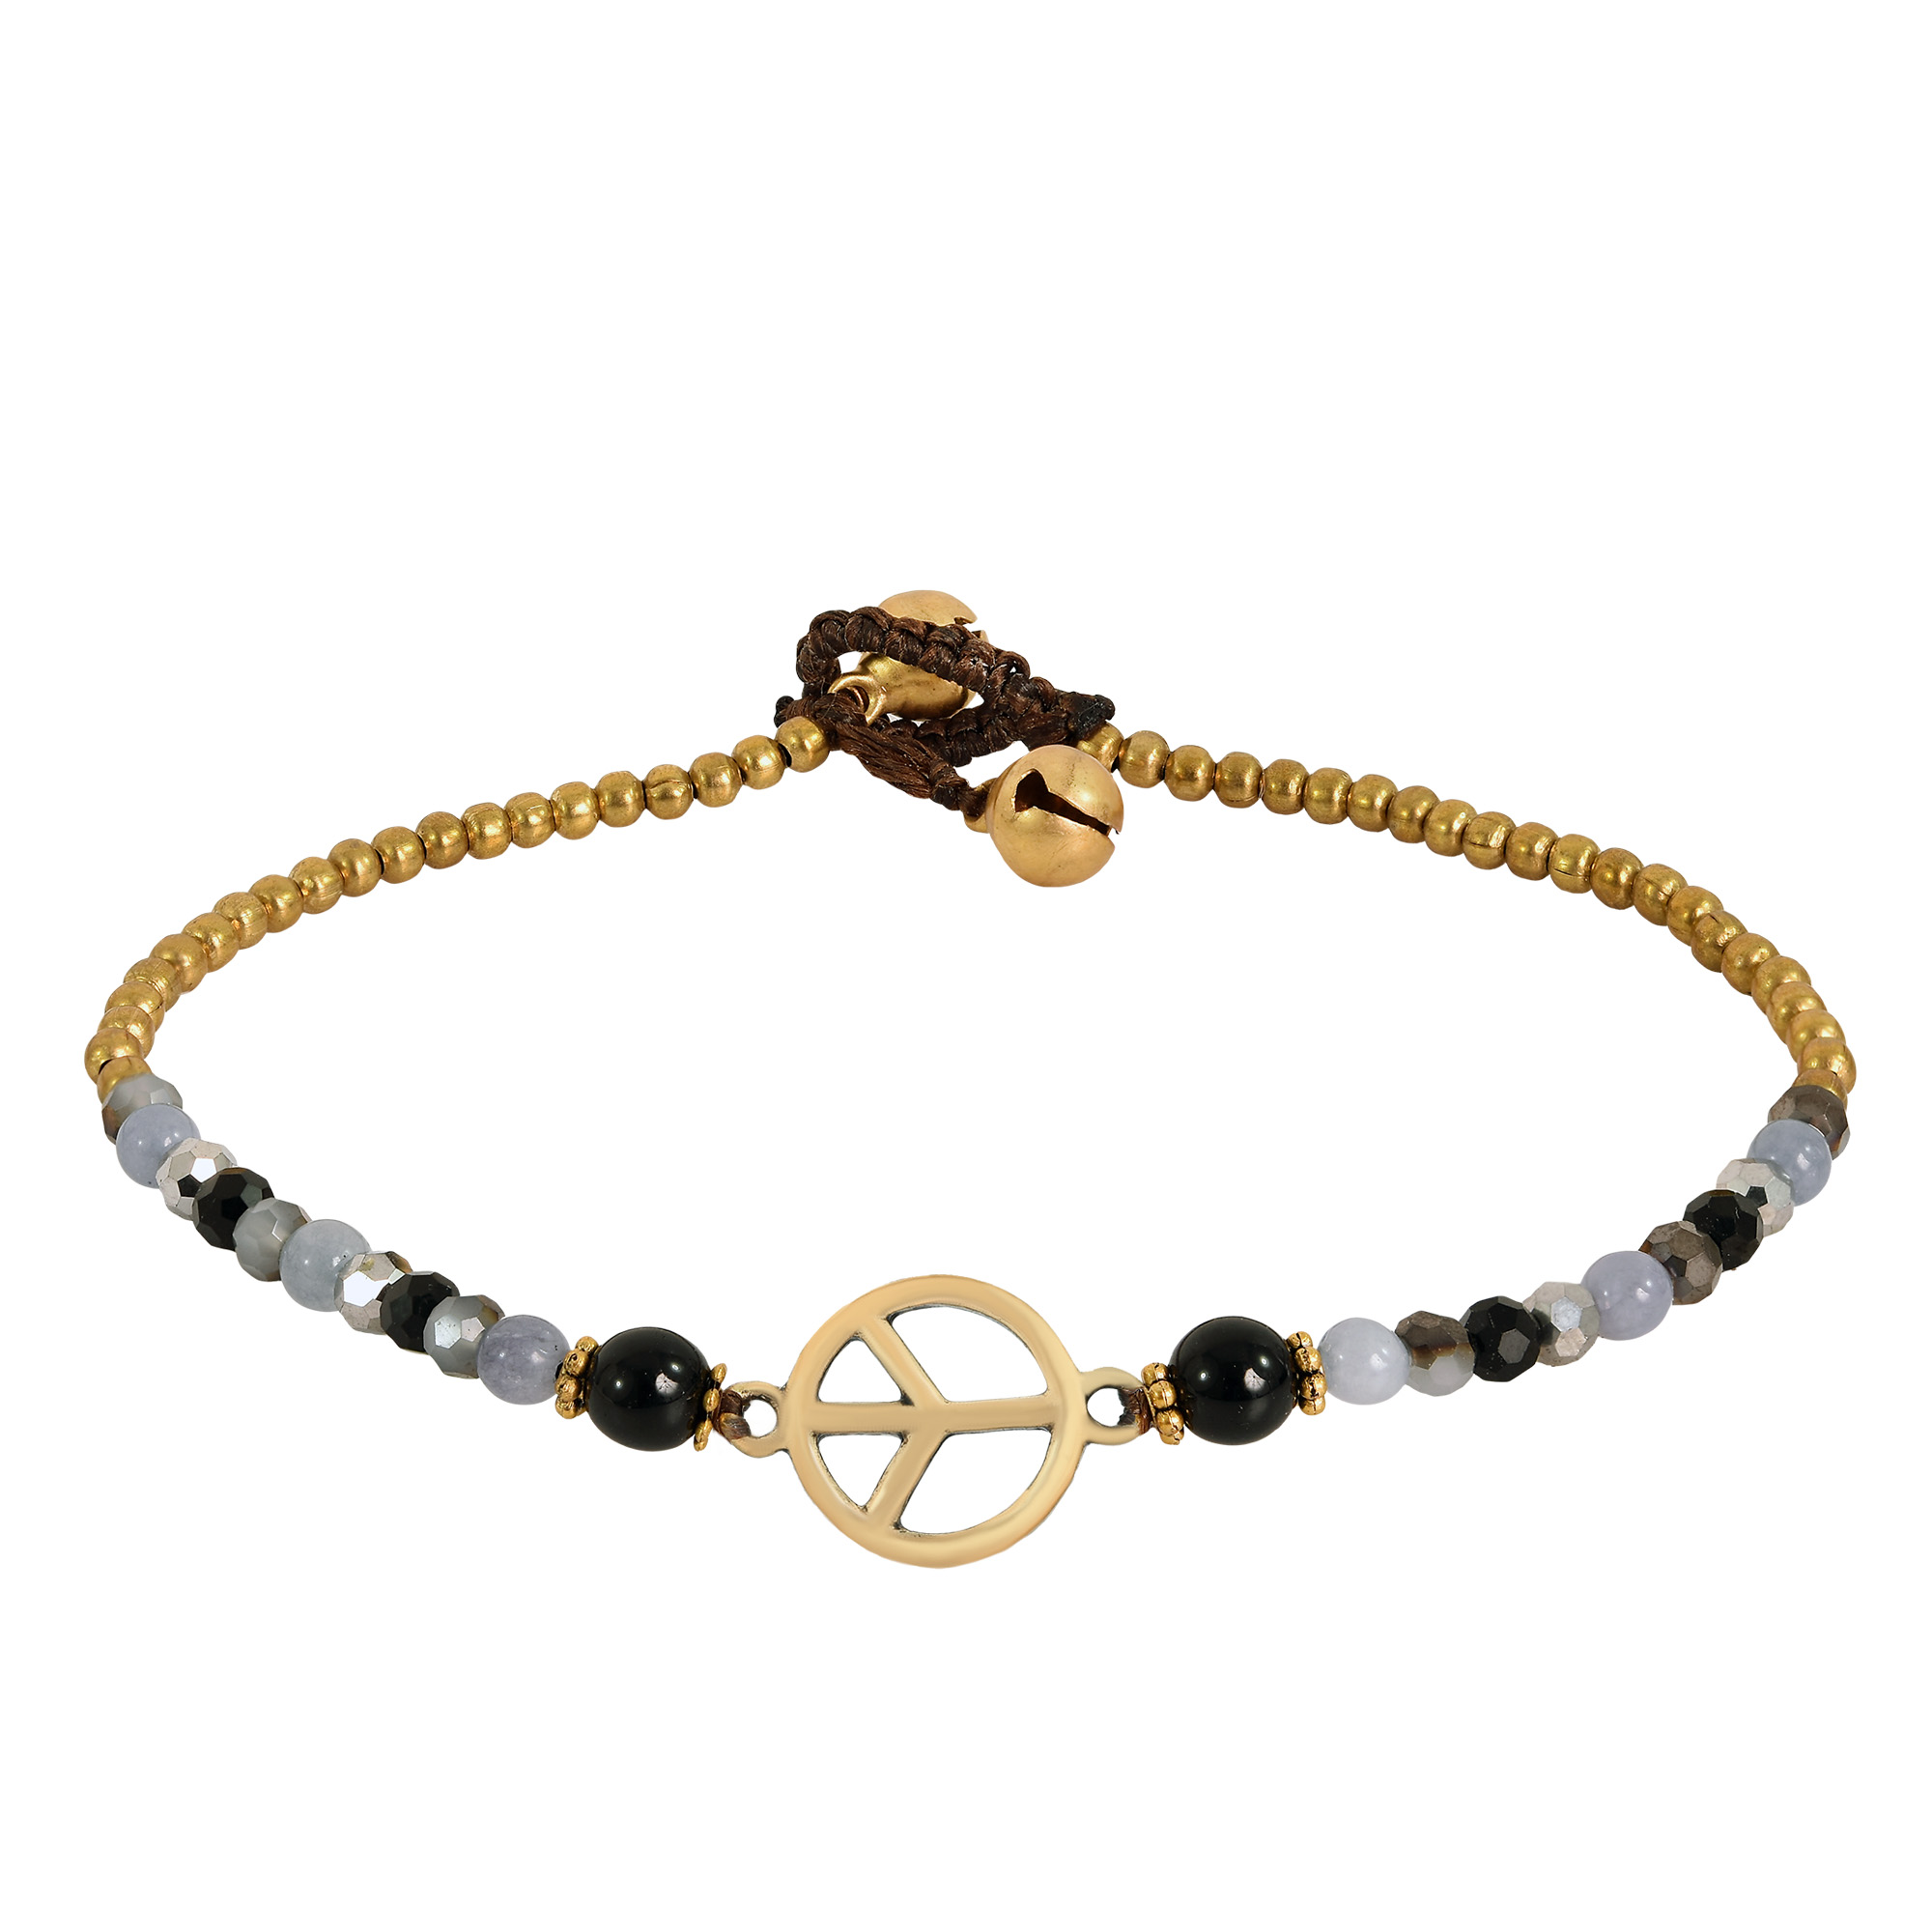 black shop bracelet peace long necklace of jewelry sign product brook edit mood bead